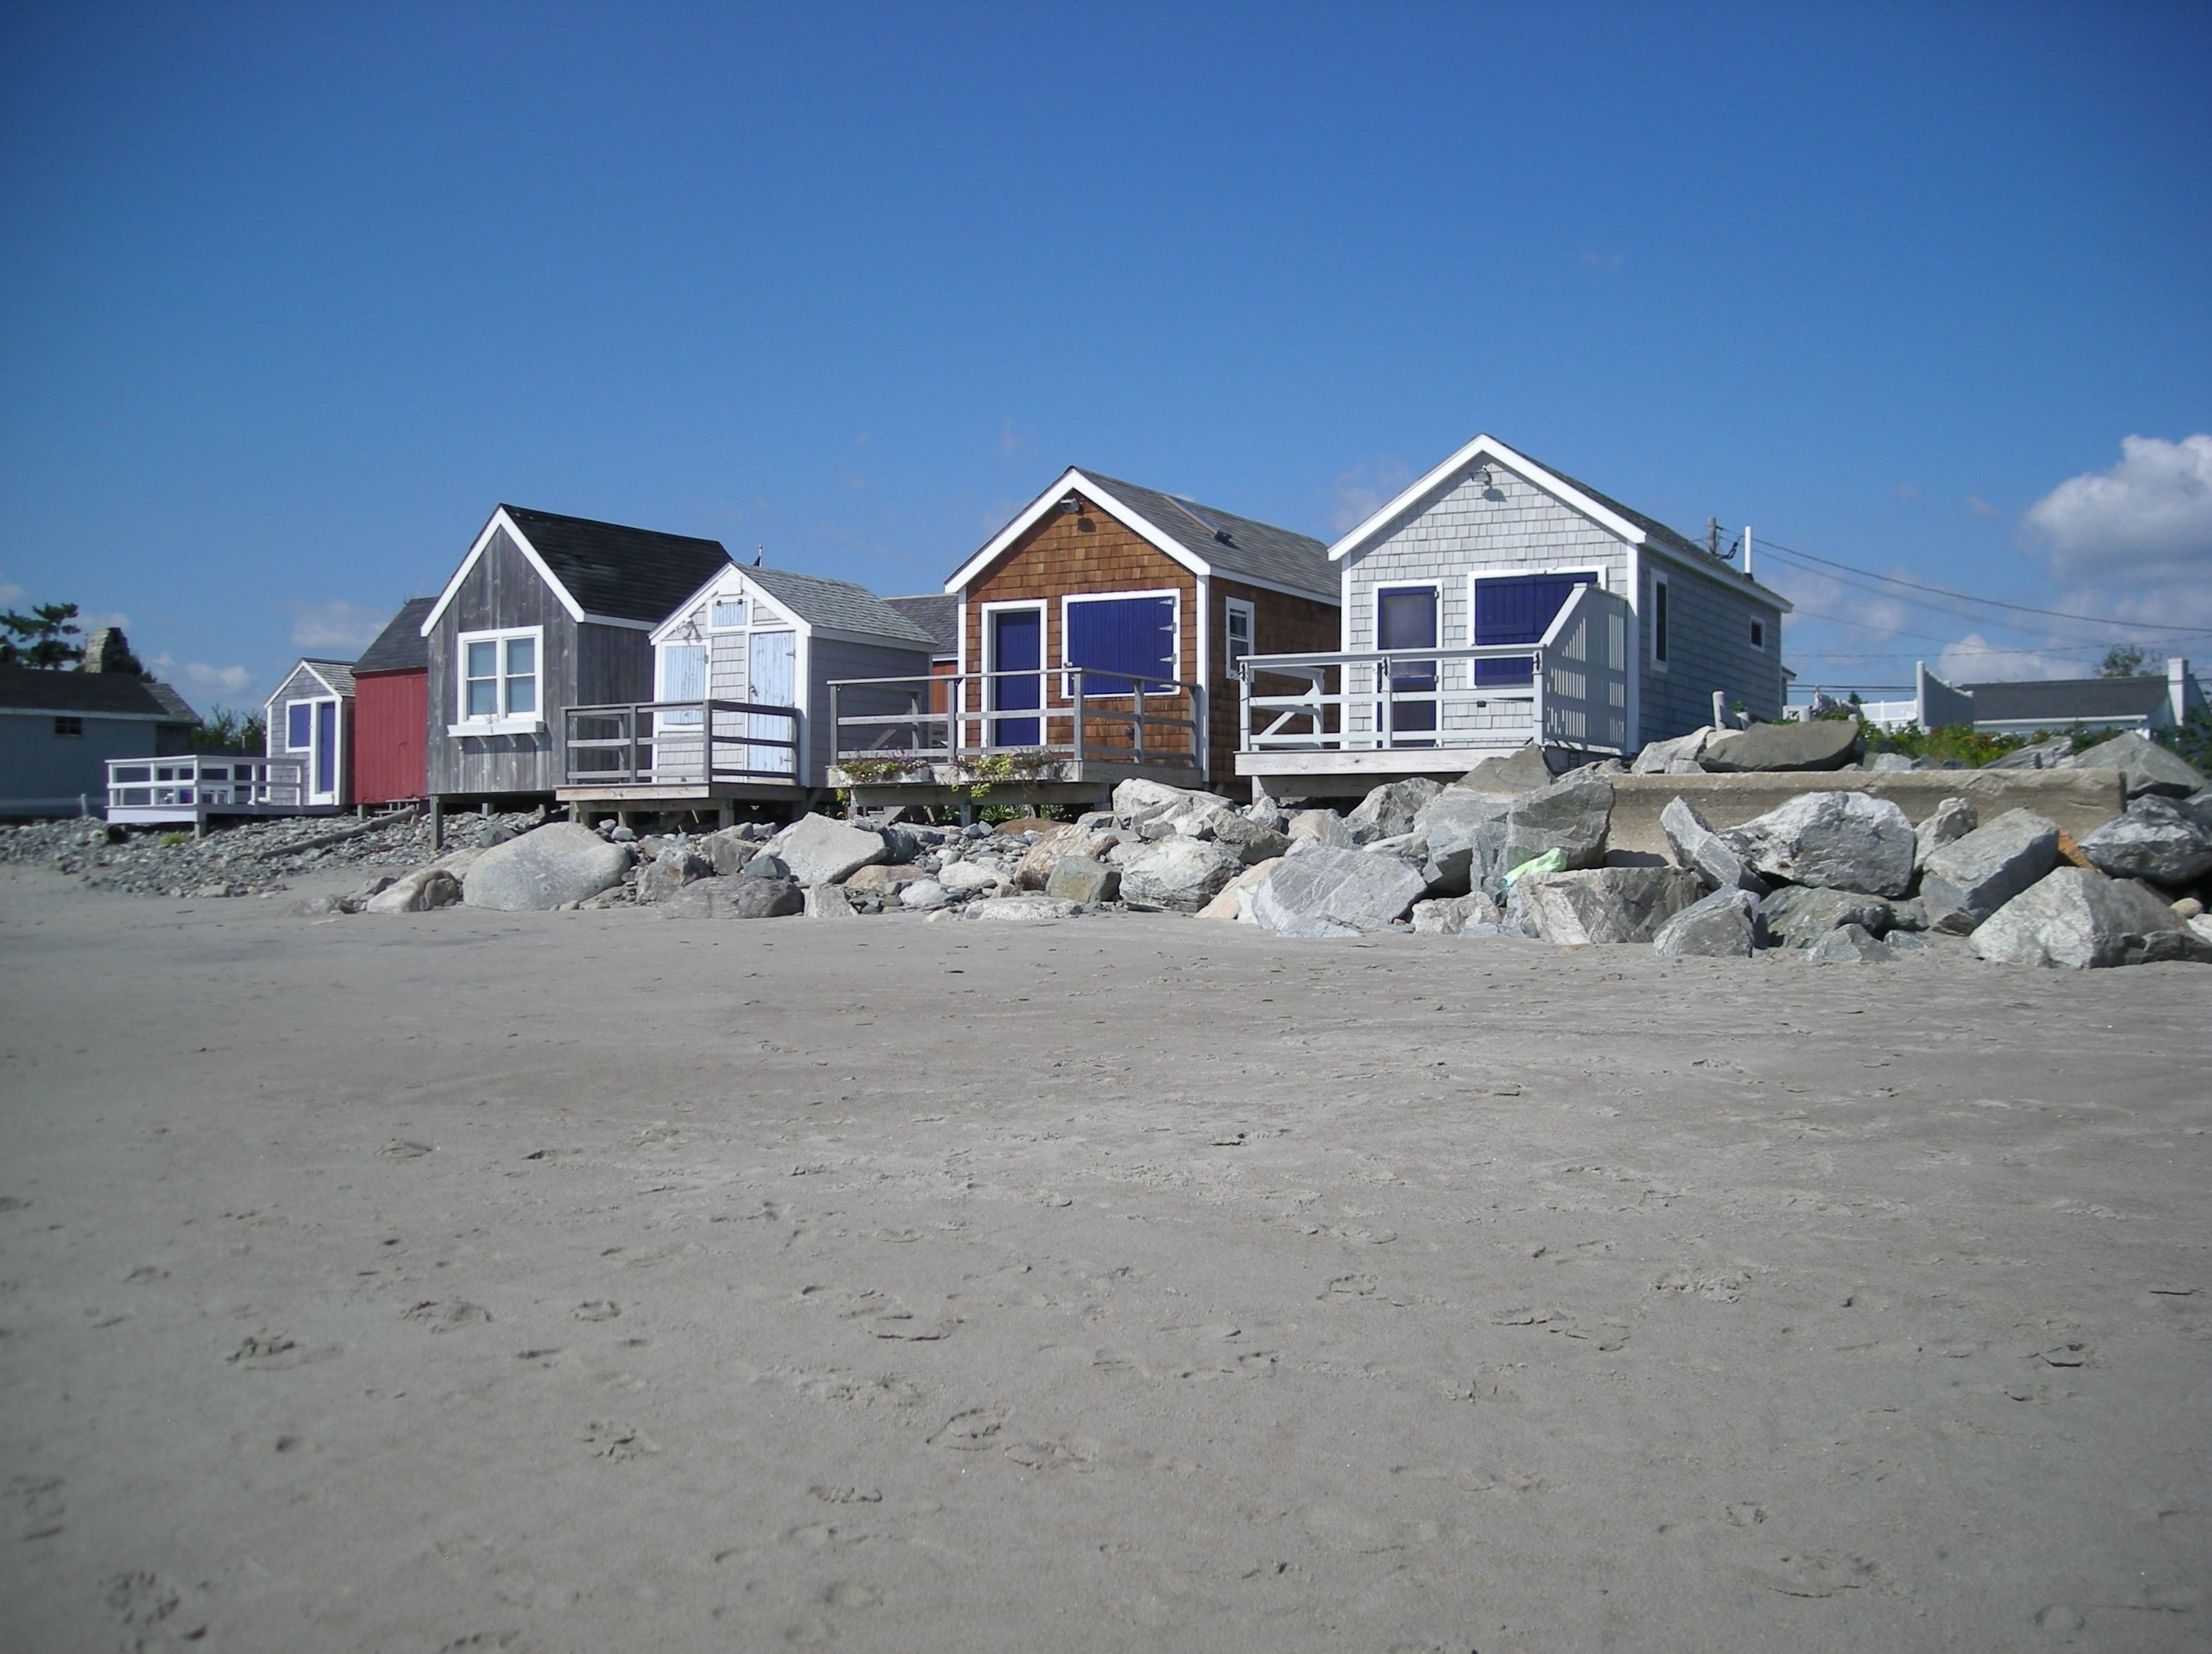 summer the island dover in quiet at time family nh keep beach of our ourselves located section for rentals grainger this house cottages we most hampton ave is